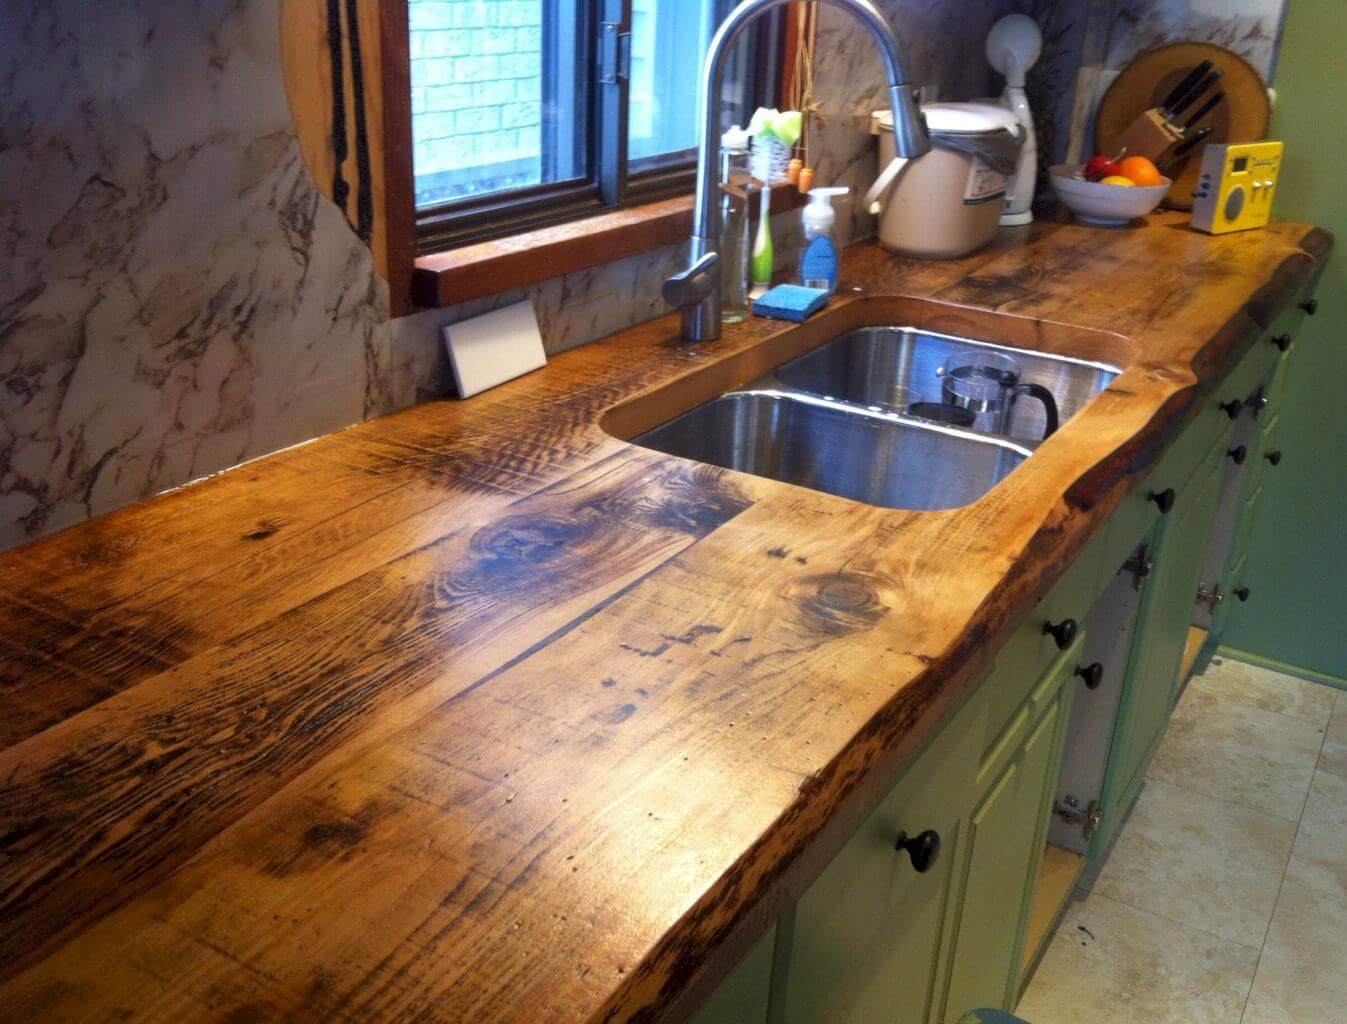 Double Sink in a Rustic Wood Counter